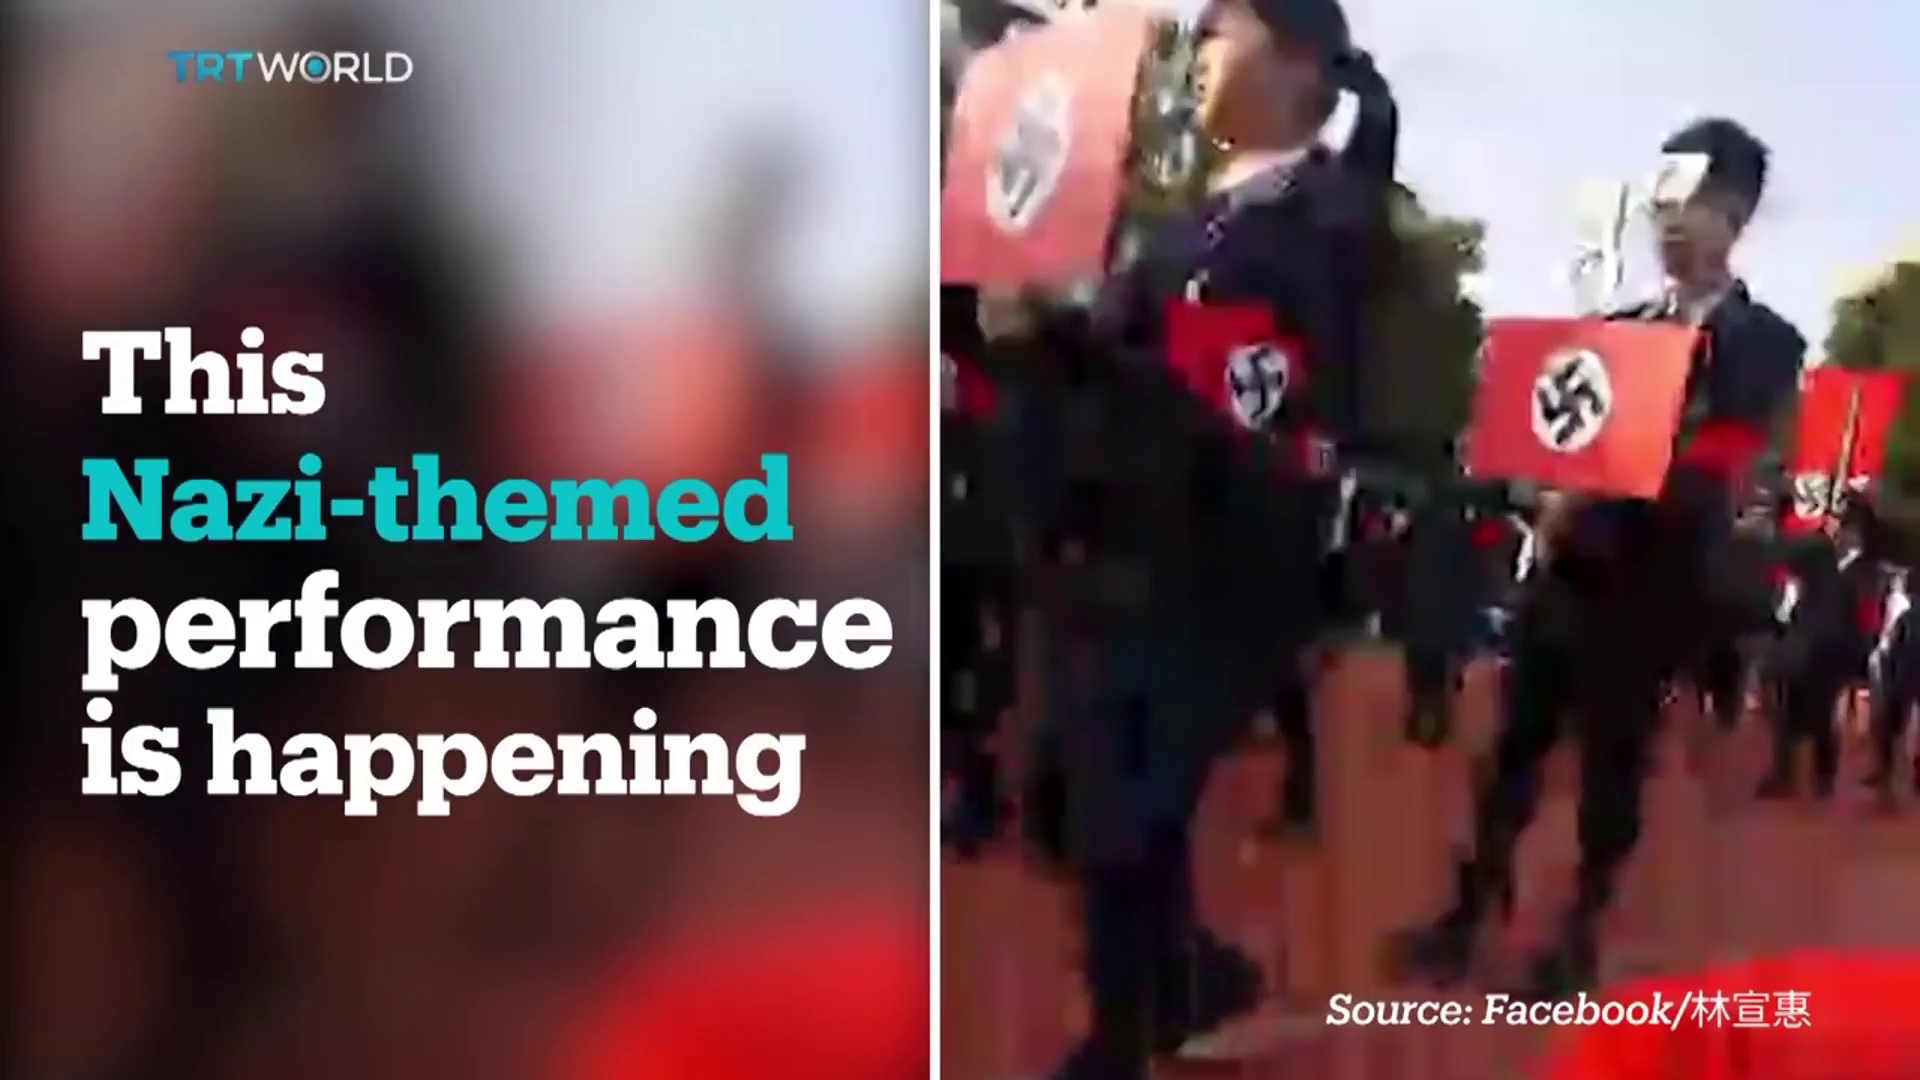 High school in Taiwan puts on Nazi-themed Christmas parade